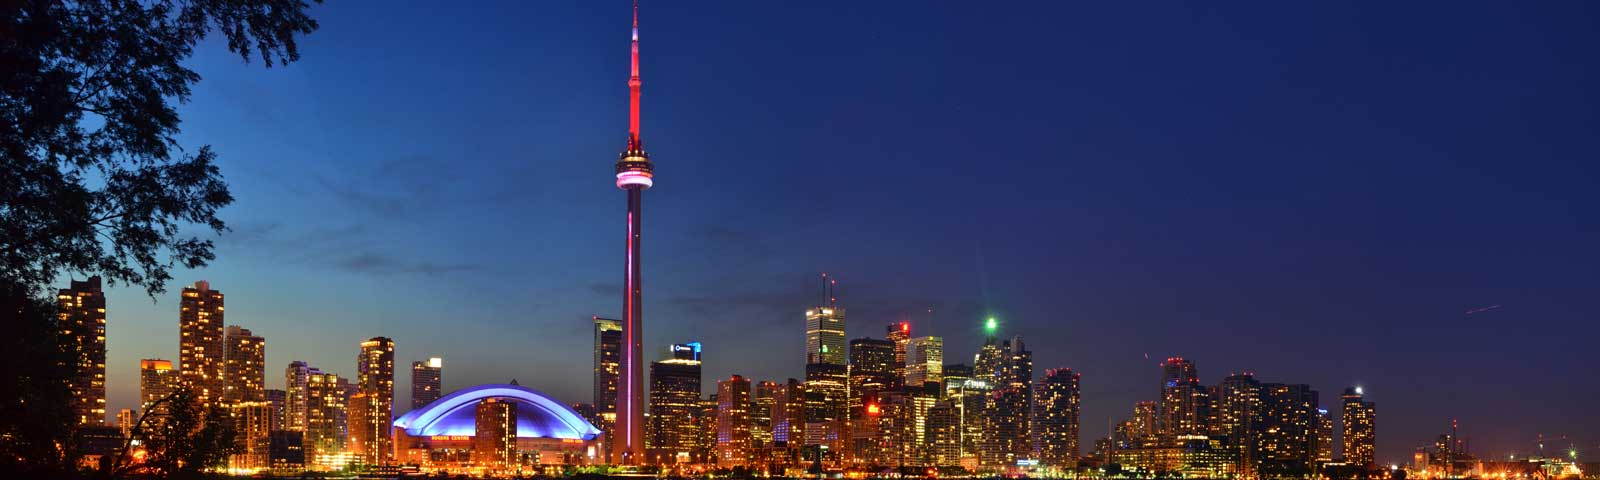 Toronto, site of Microsoft Worldwide Partner Conference in 2016